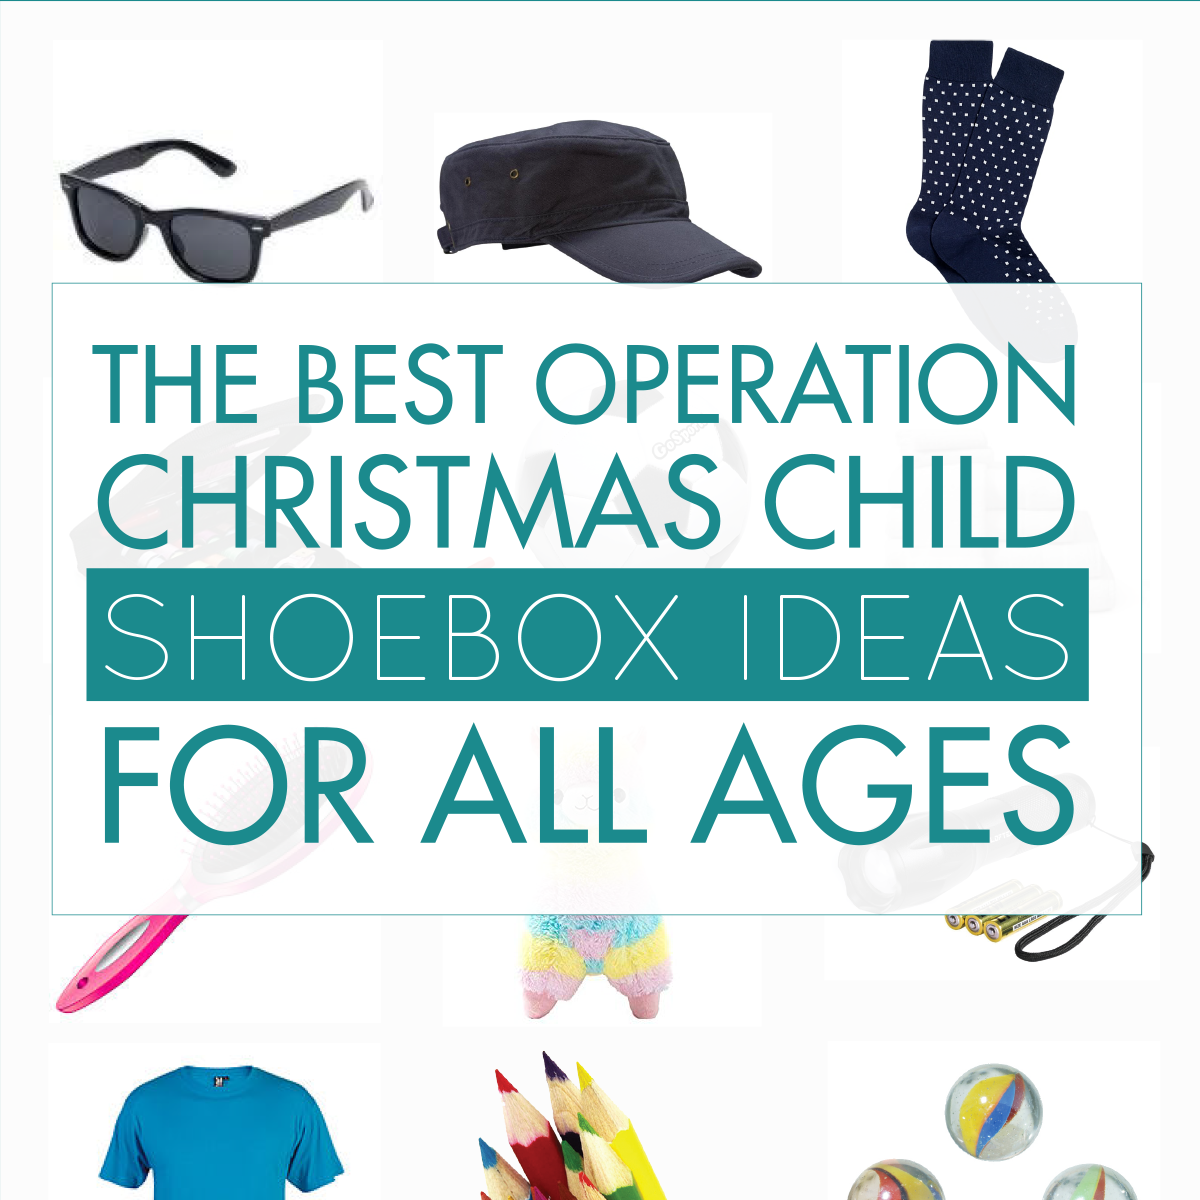 Operation Christmas Child Clipart 2019.Huge List Of Operation Christmas Child Ideas For Each Age Group